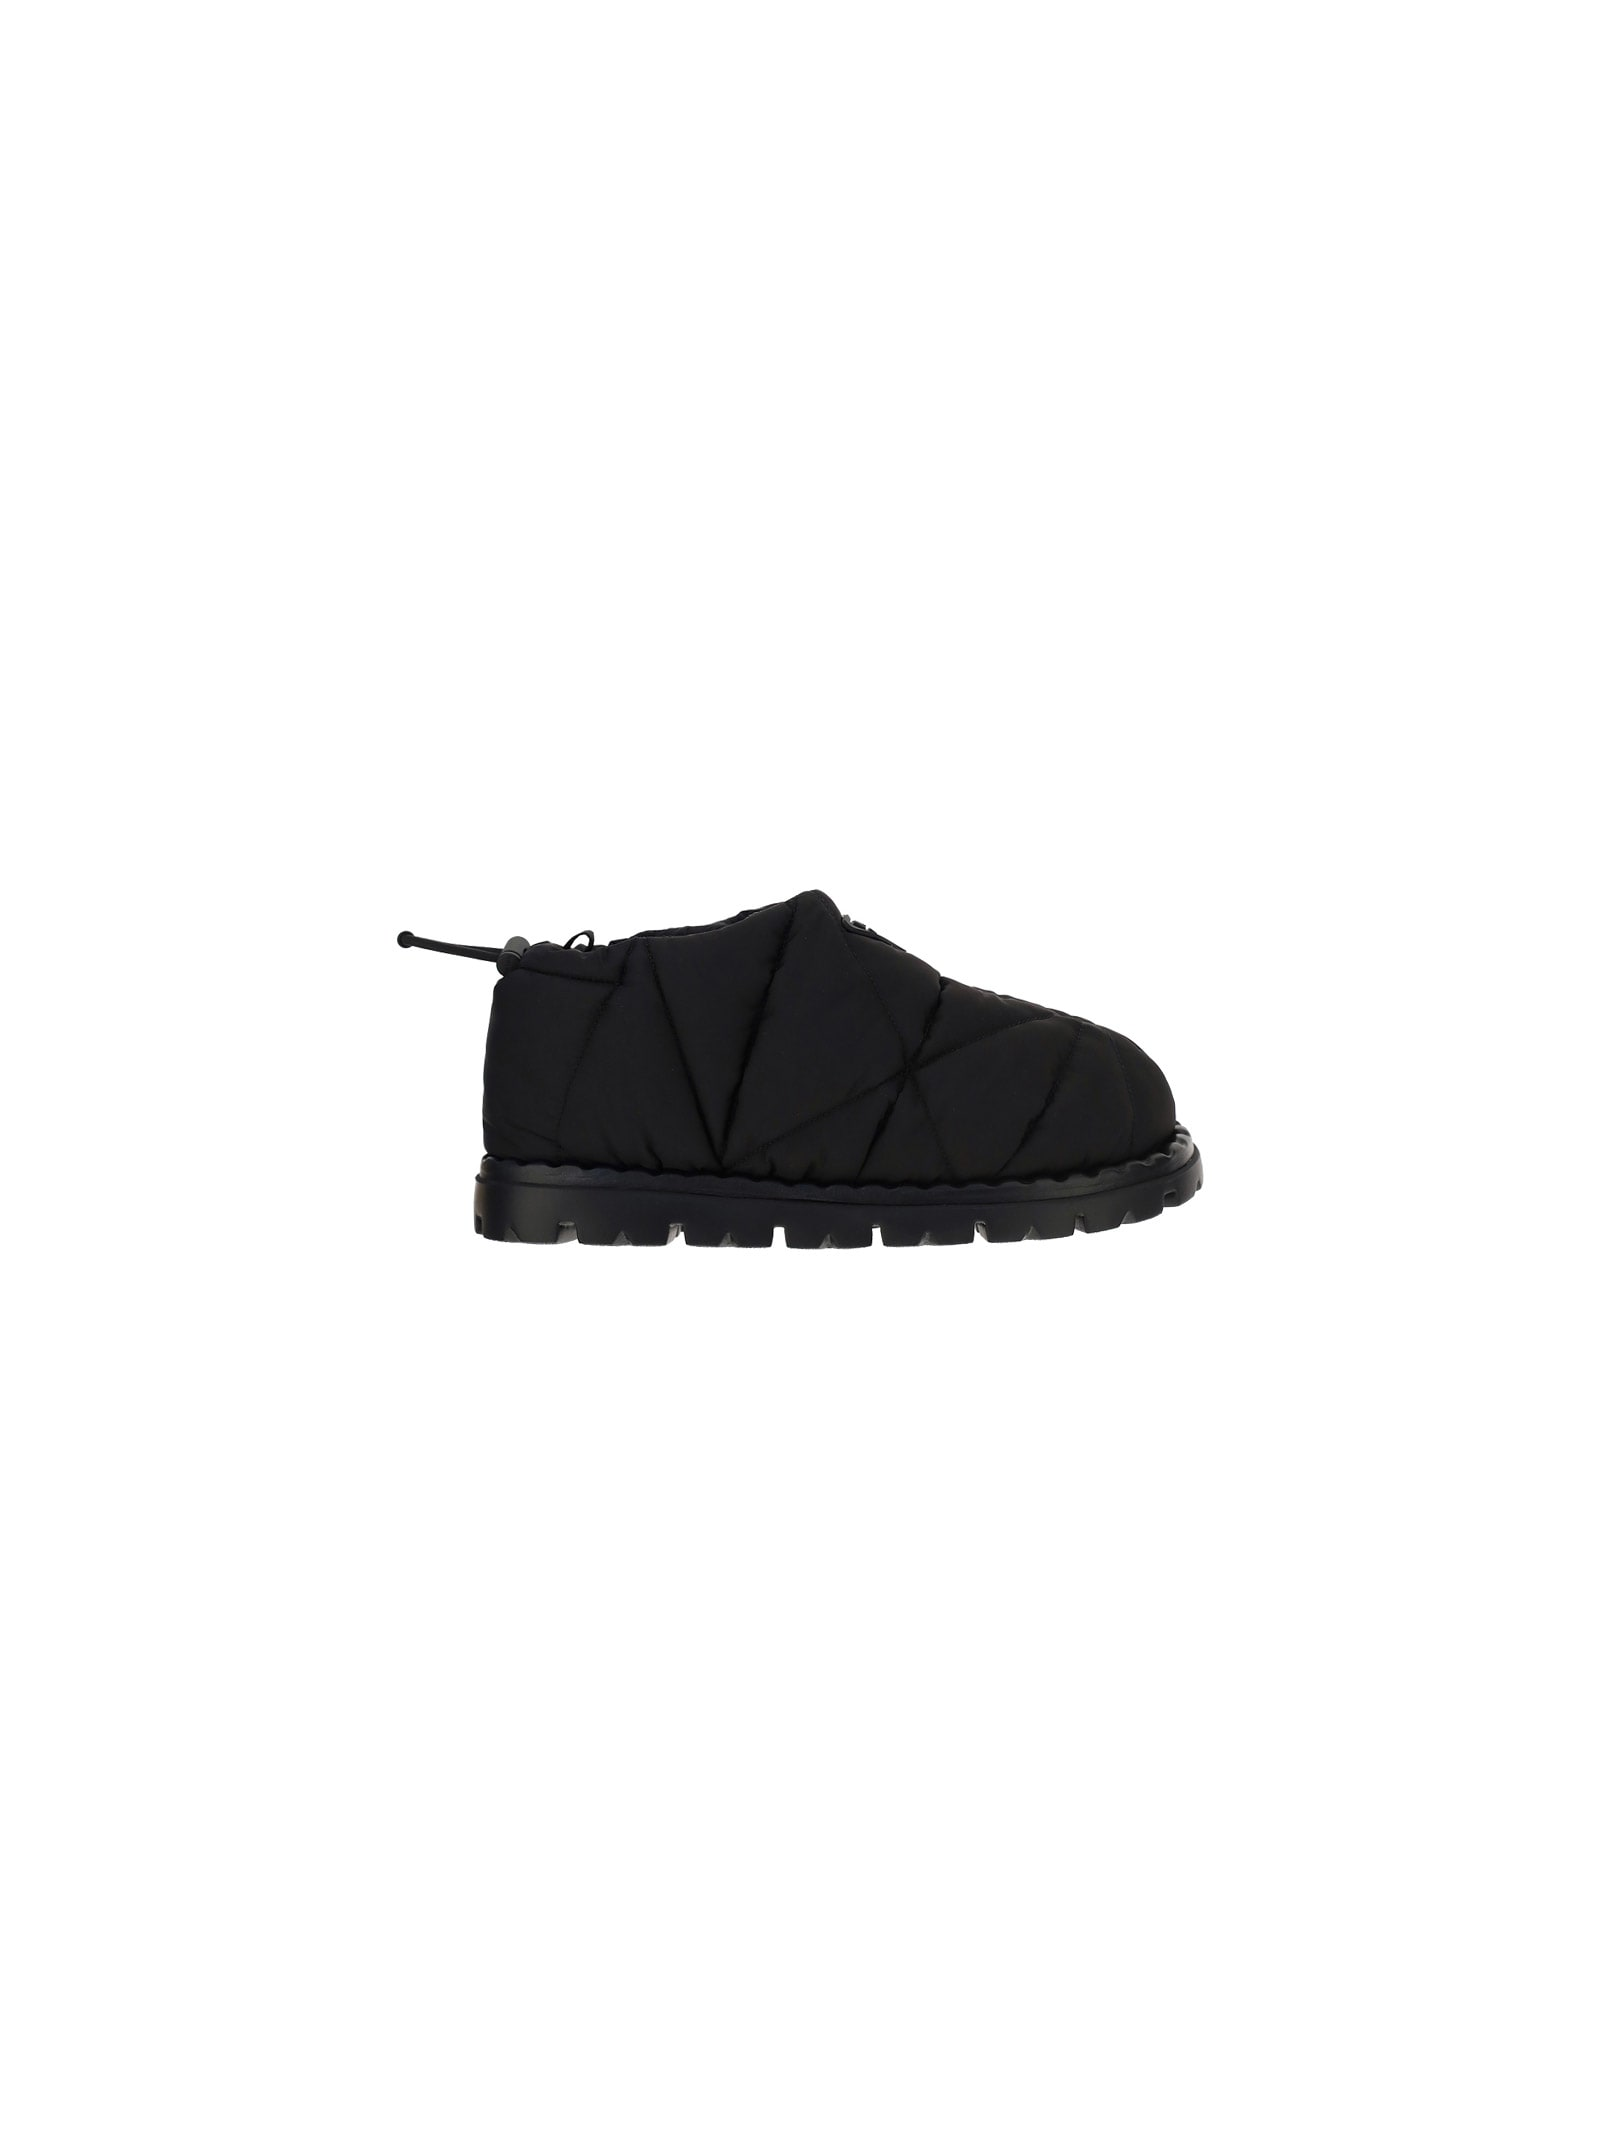 Buy Prada Blow Boots online, shop Prada shoes with free shipping